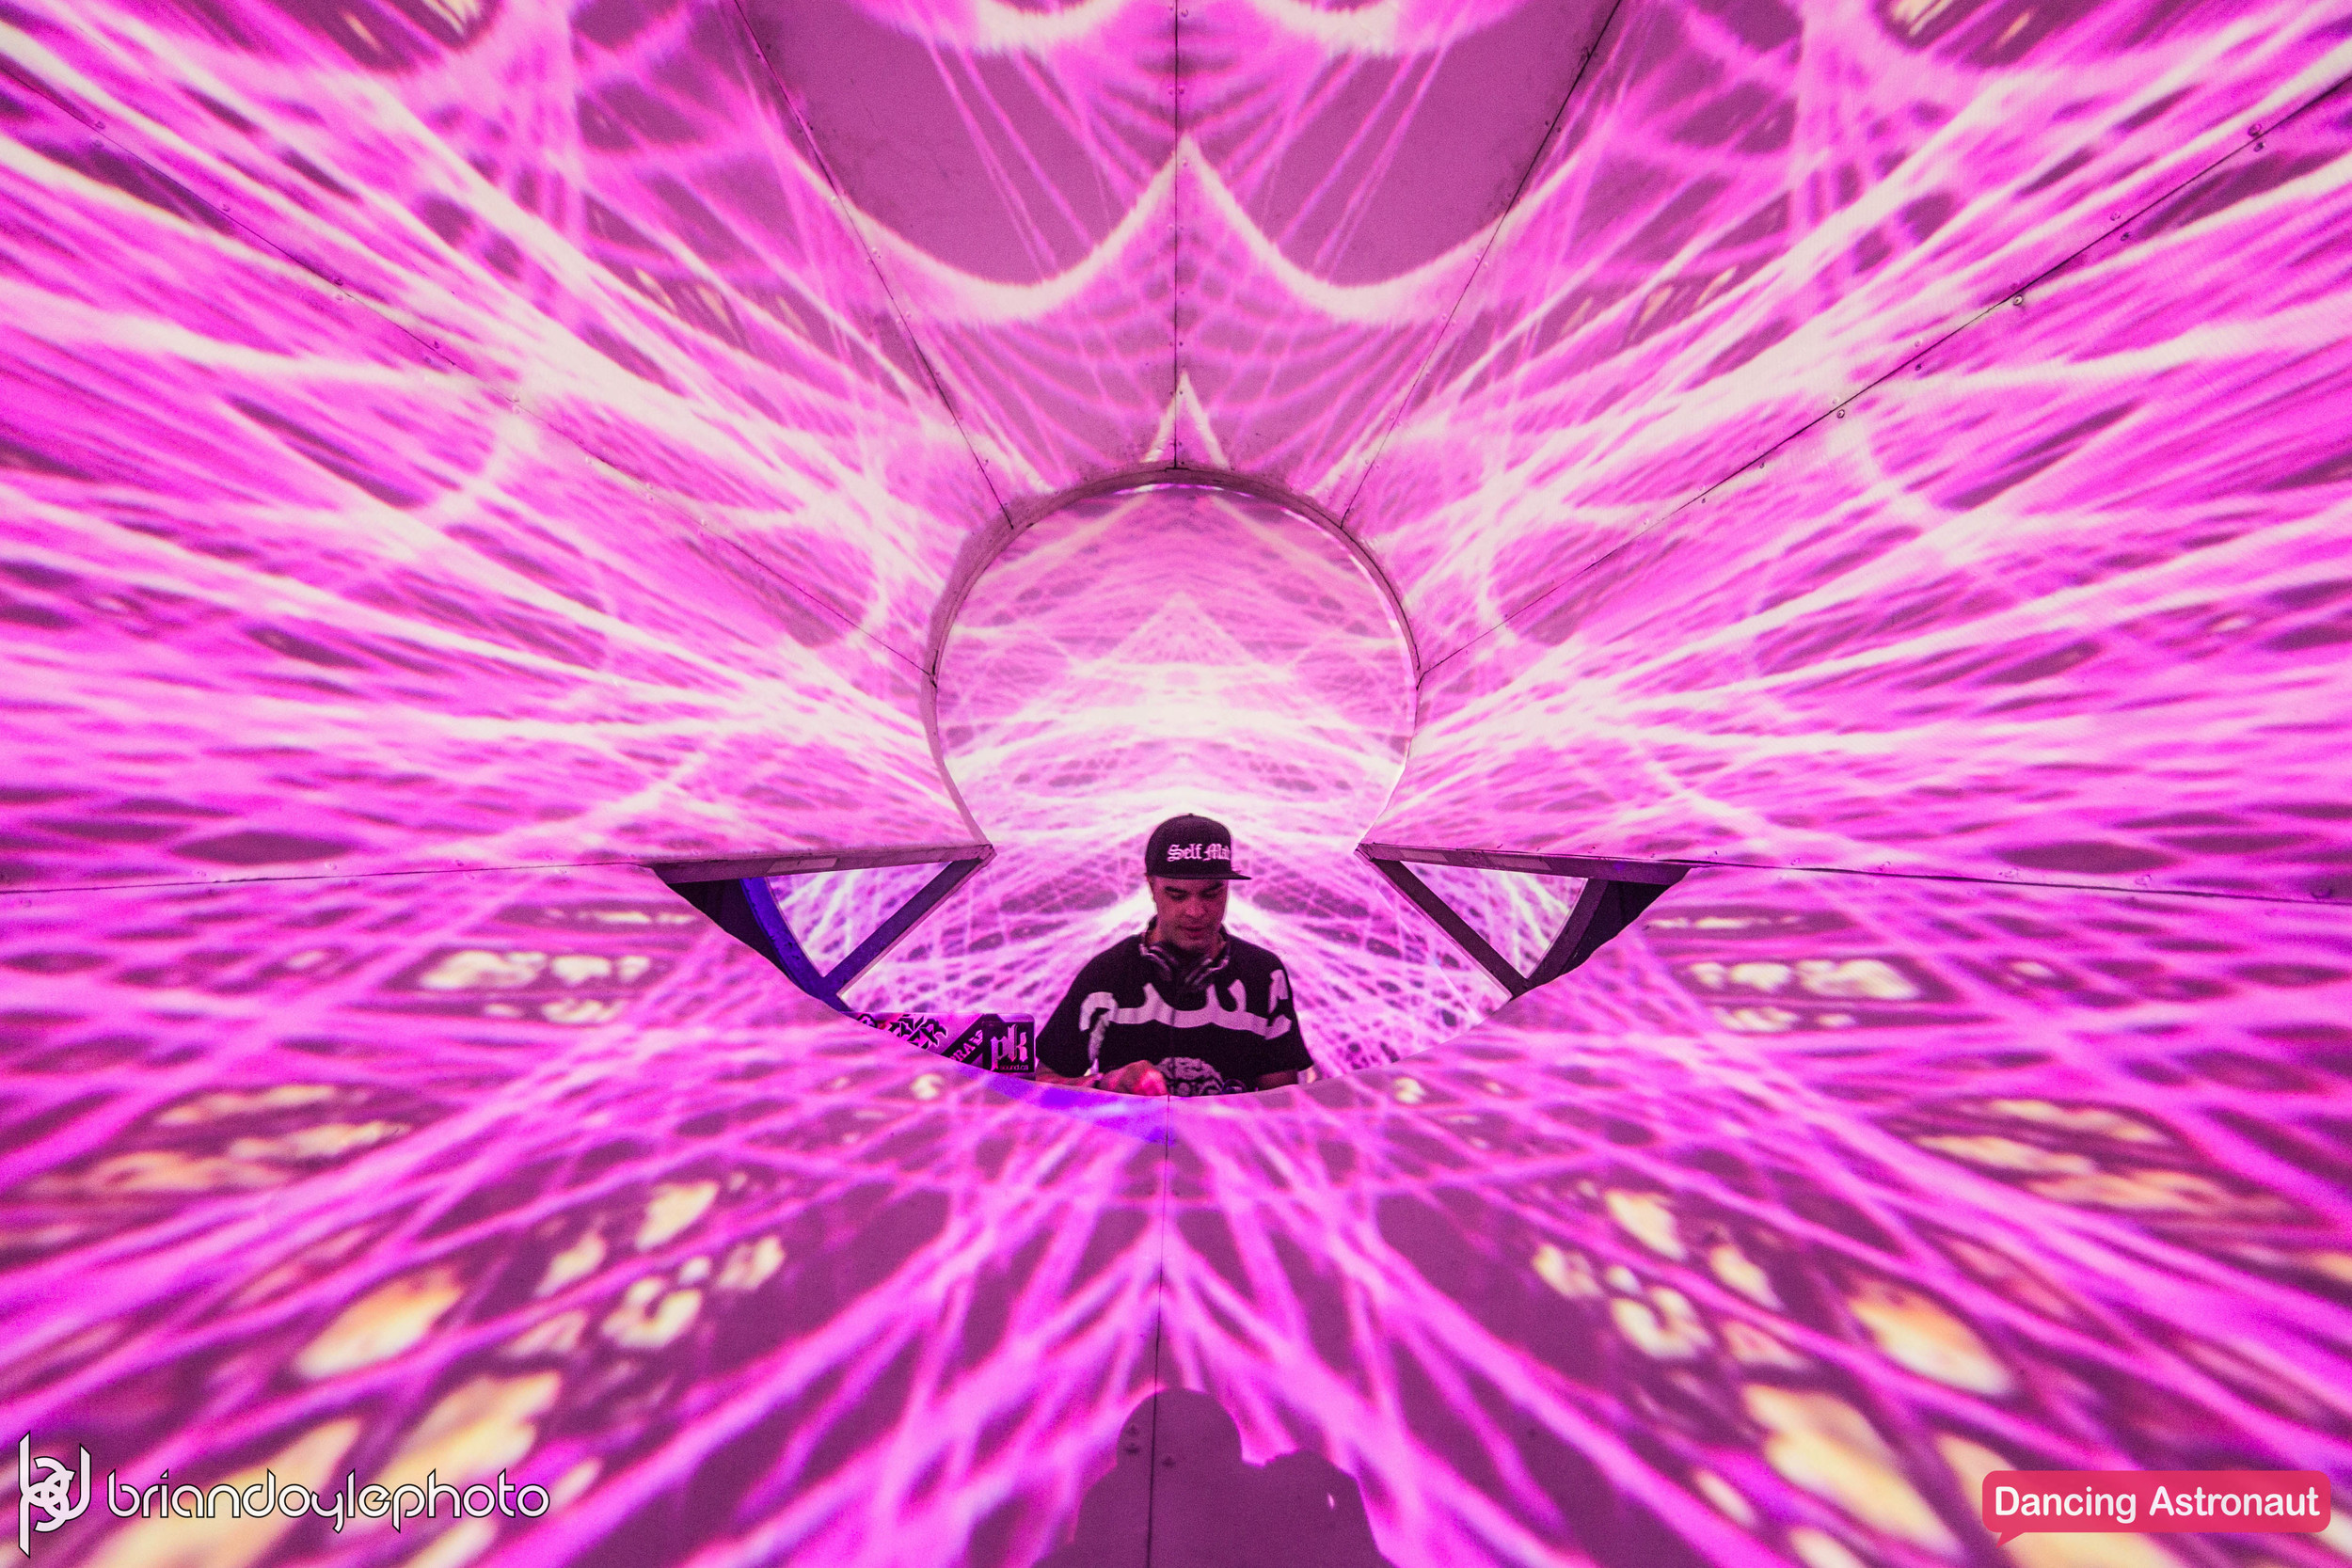 Datsik Ninja Nation Tour at Exchange LA 15.03.2015-35.jpg